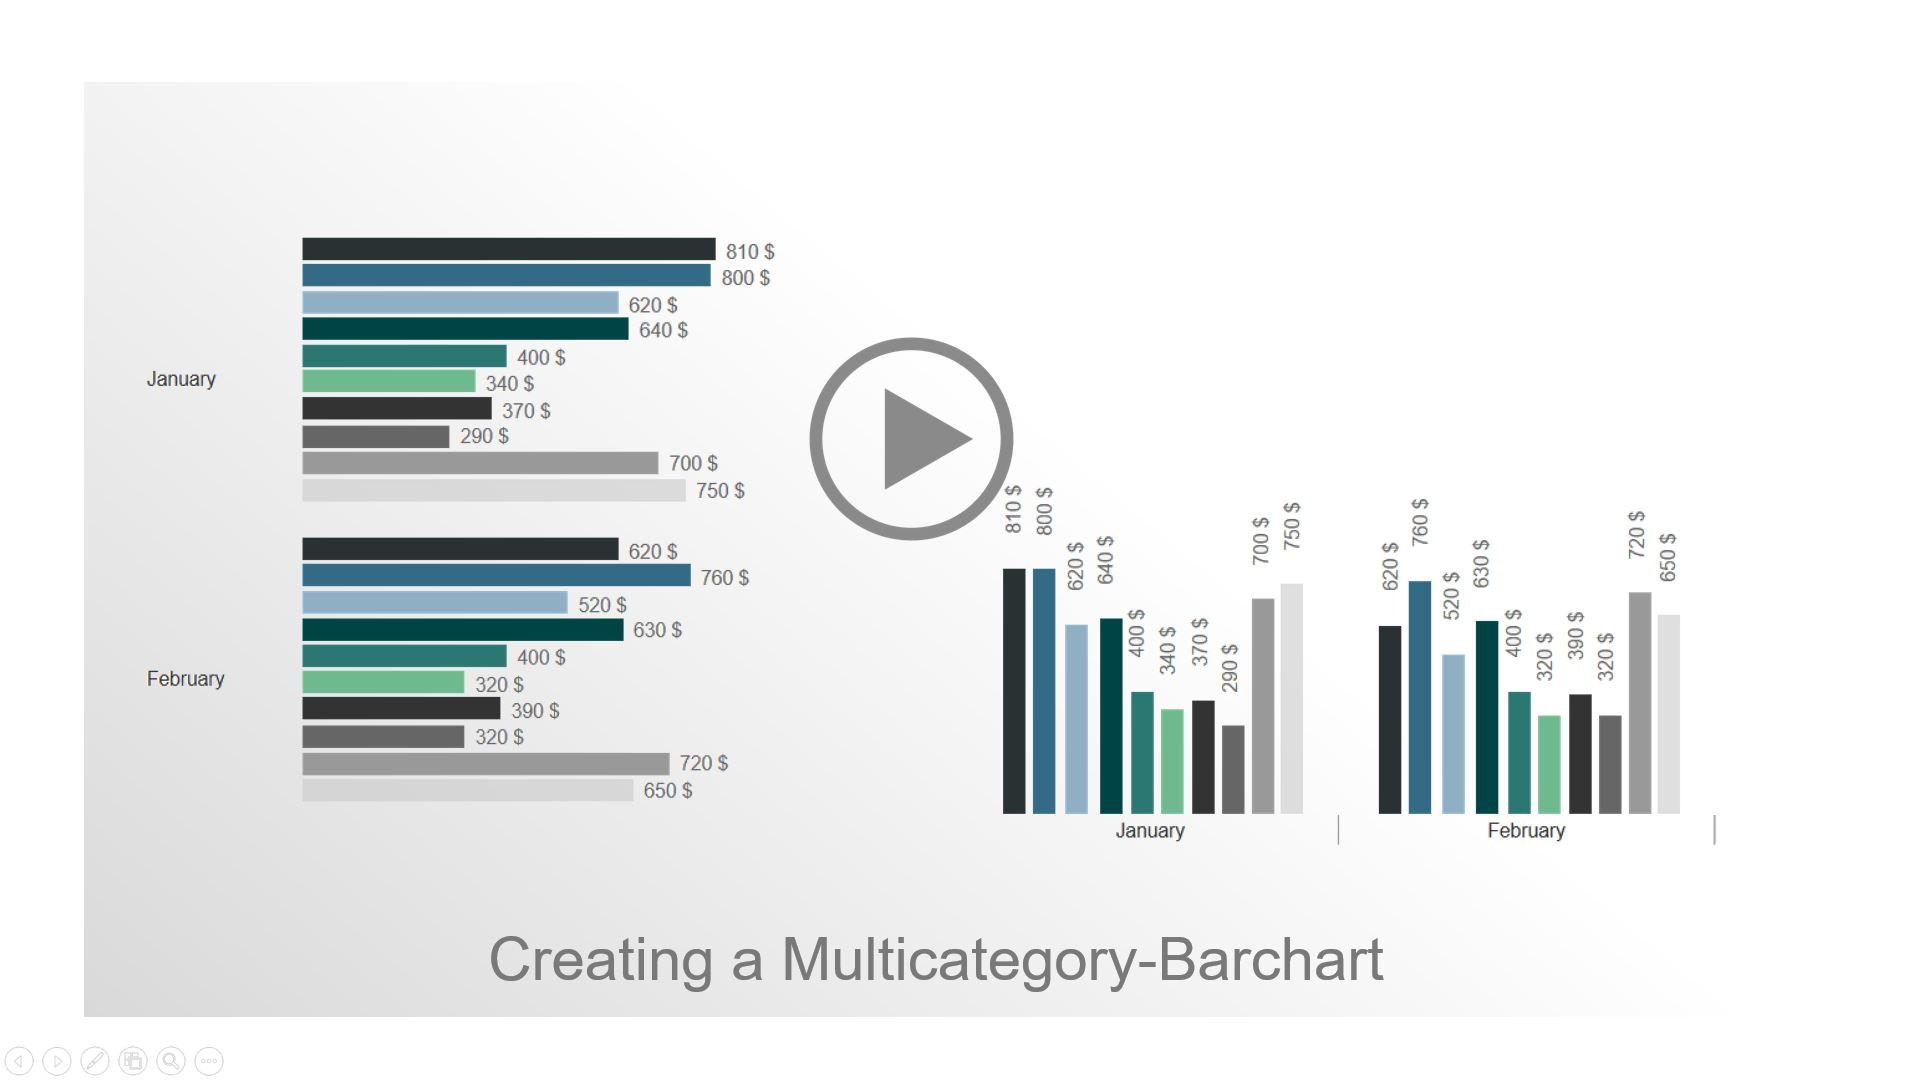 Creating a Multicategory-Barchart in Axure, Tutorial